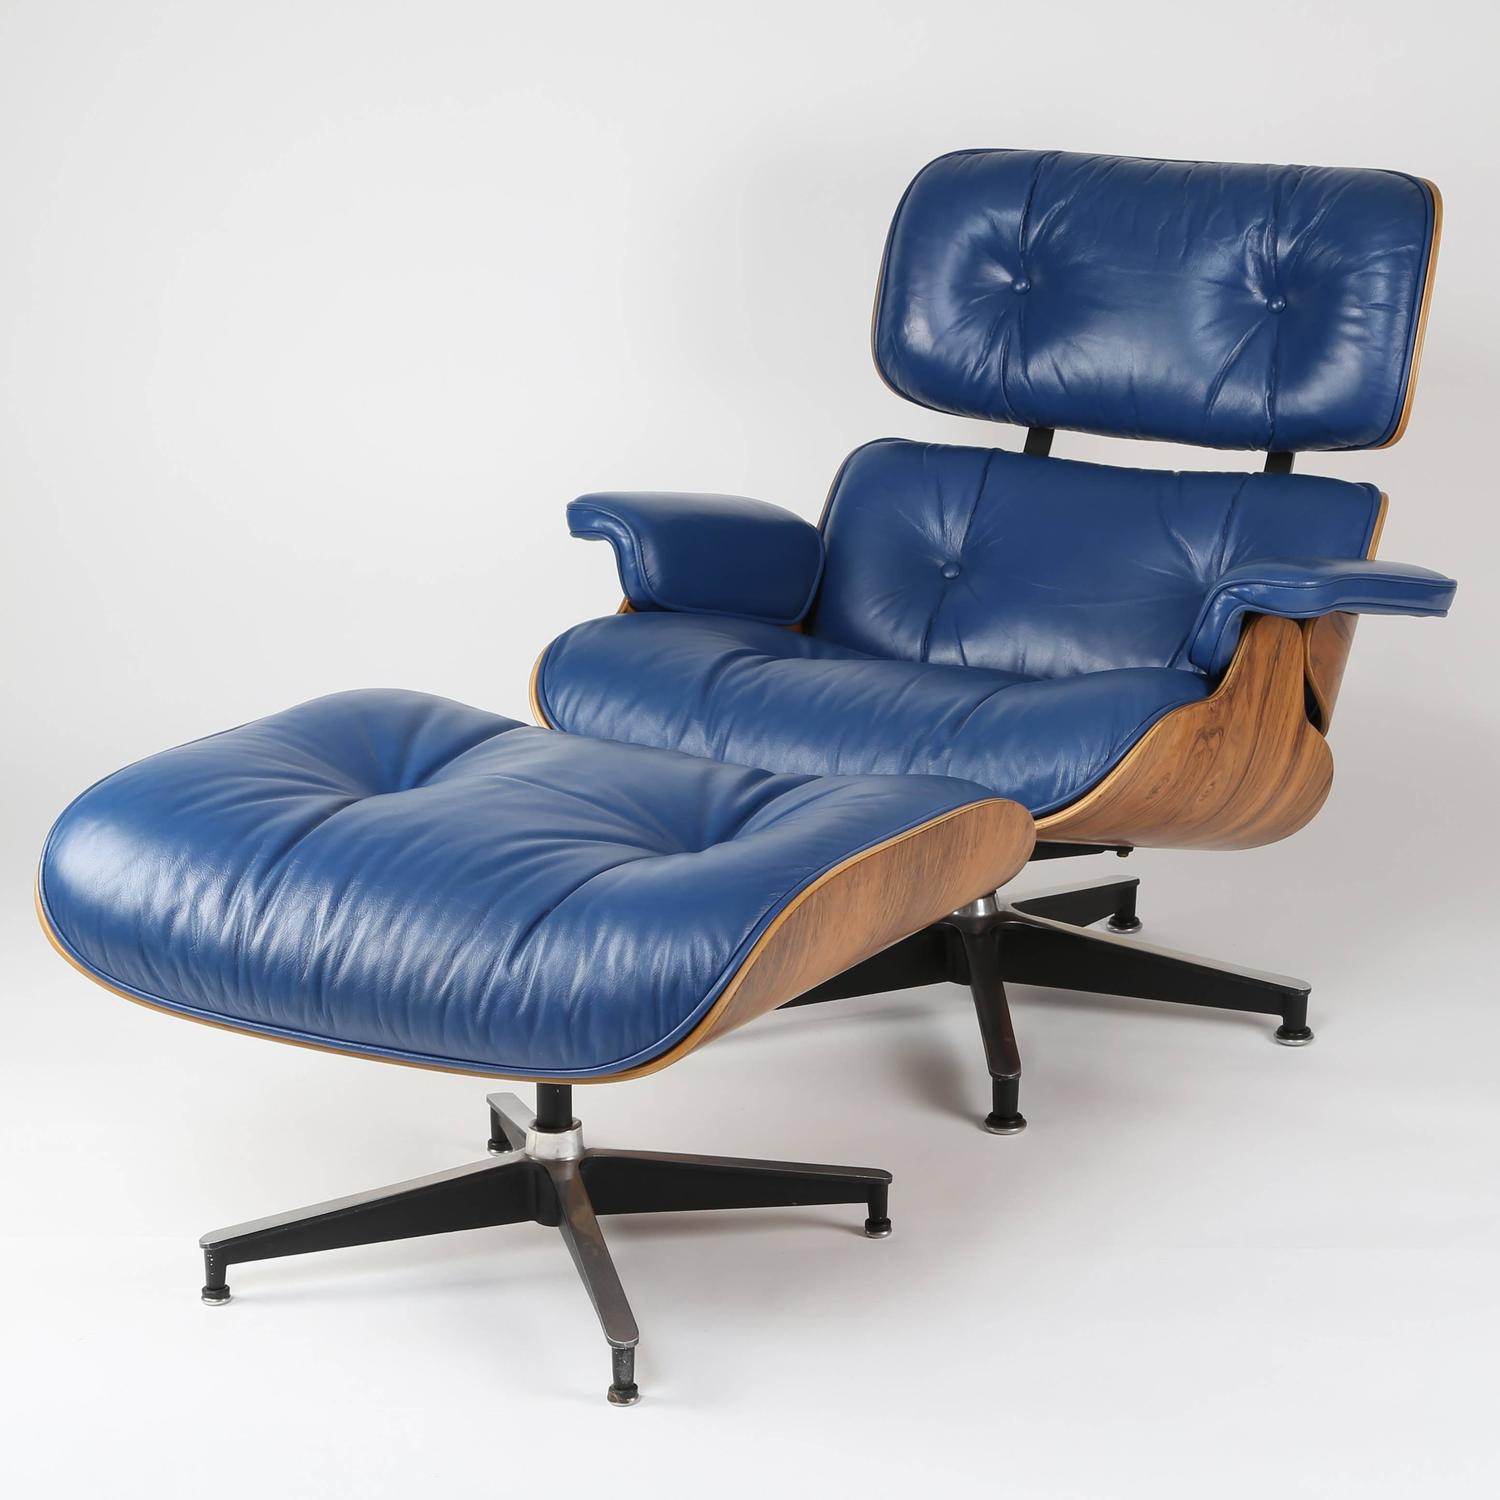 Vintage 670671 Eames Rosewood Lounge Chair and Ottoman in